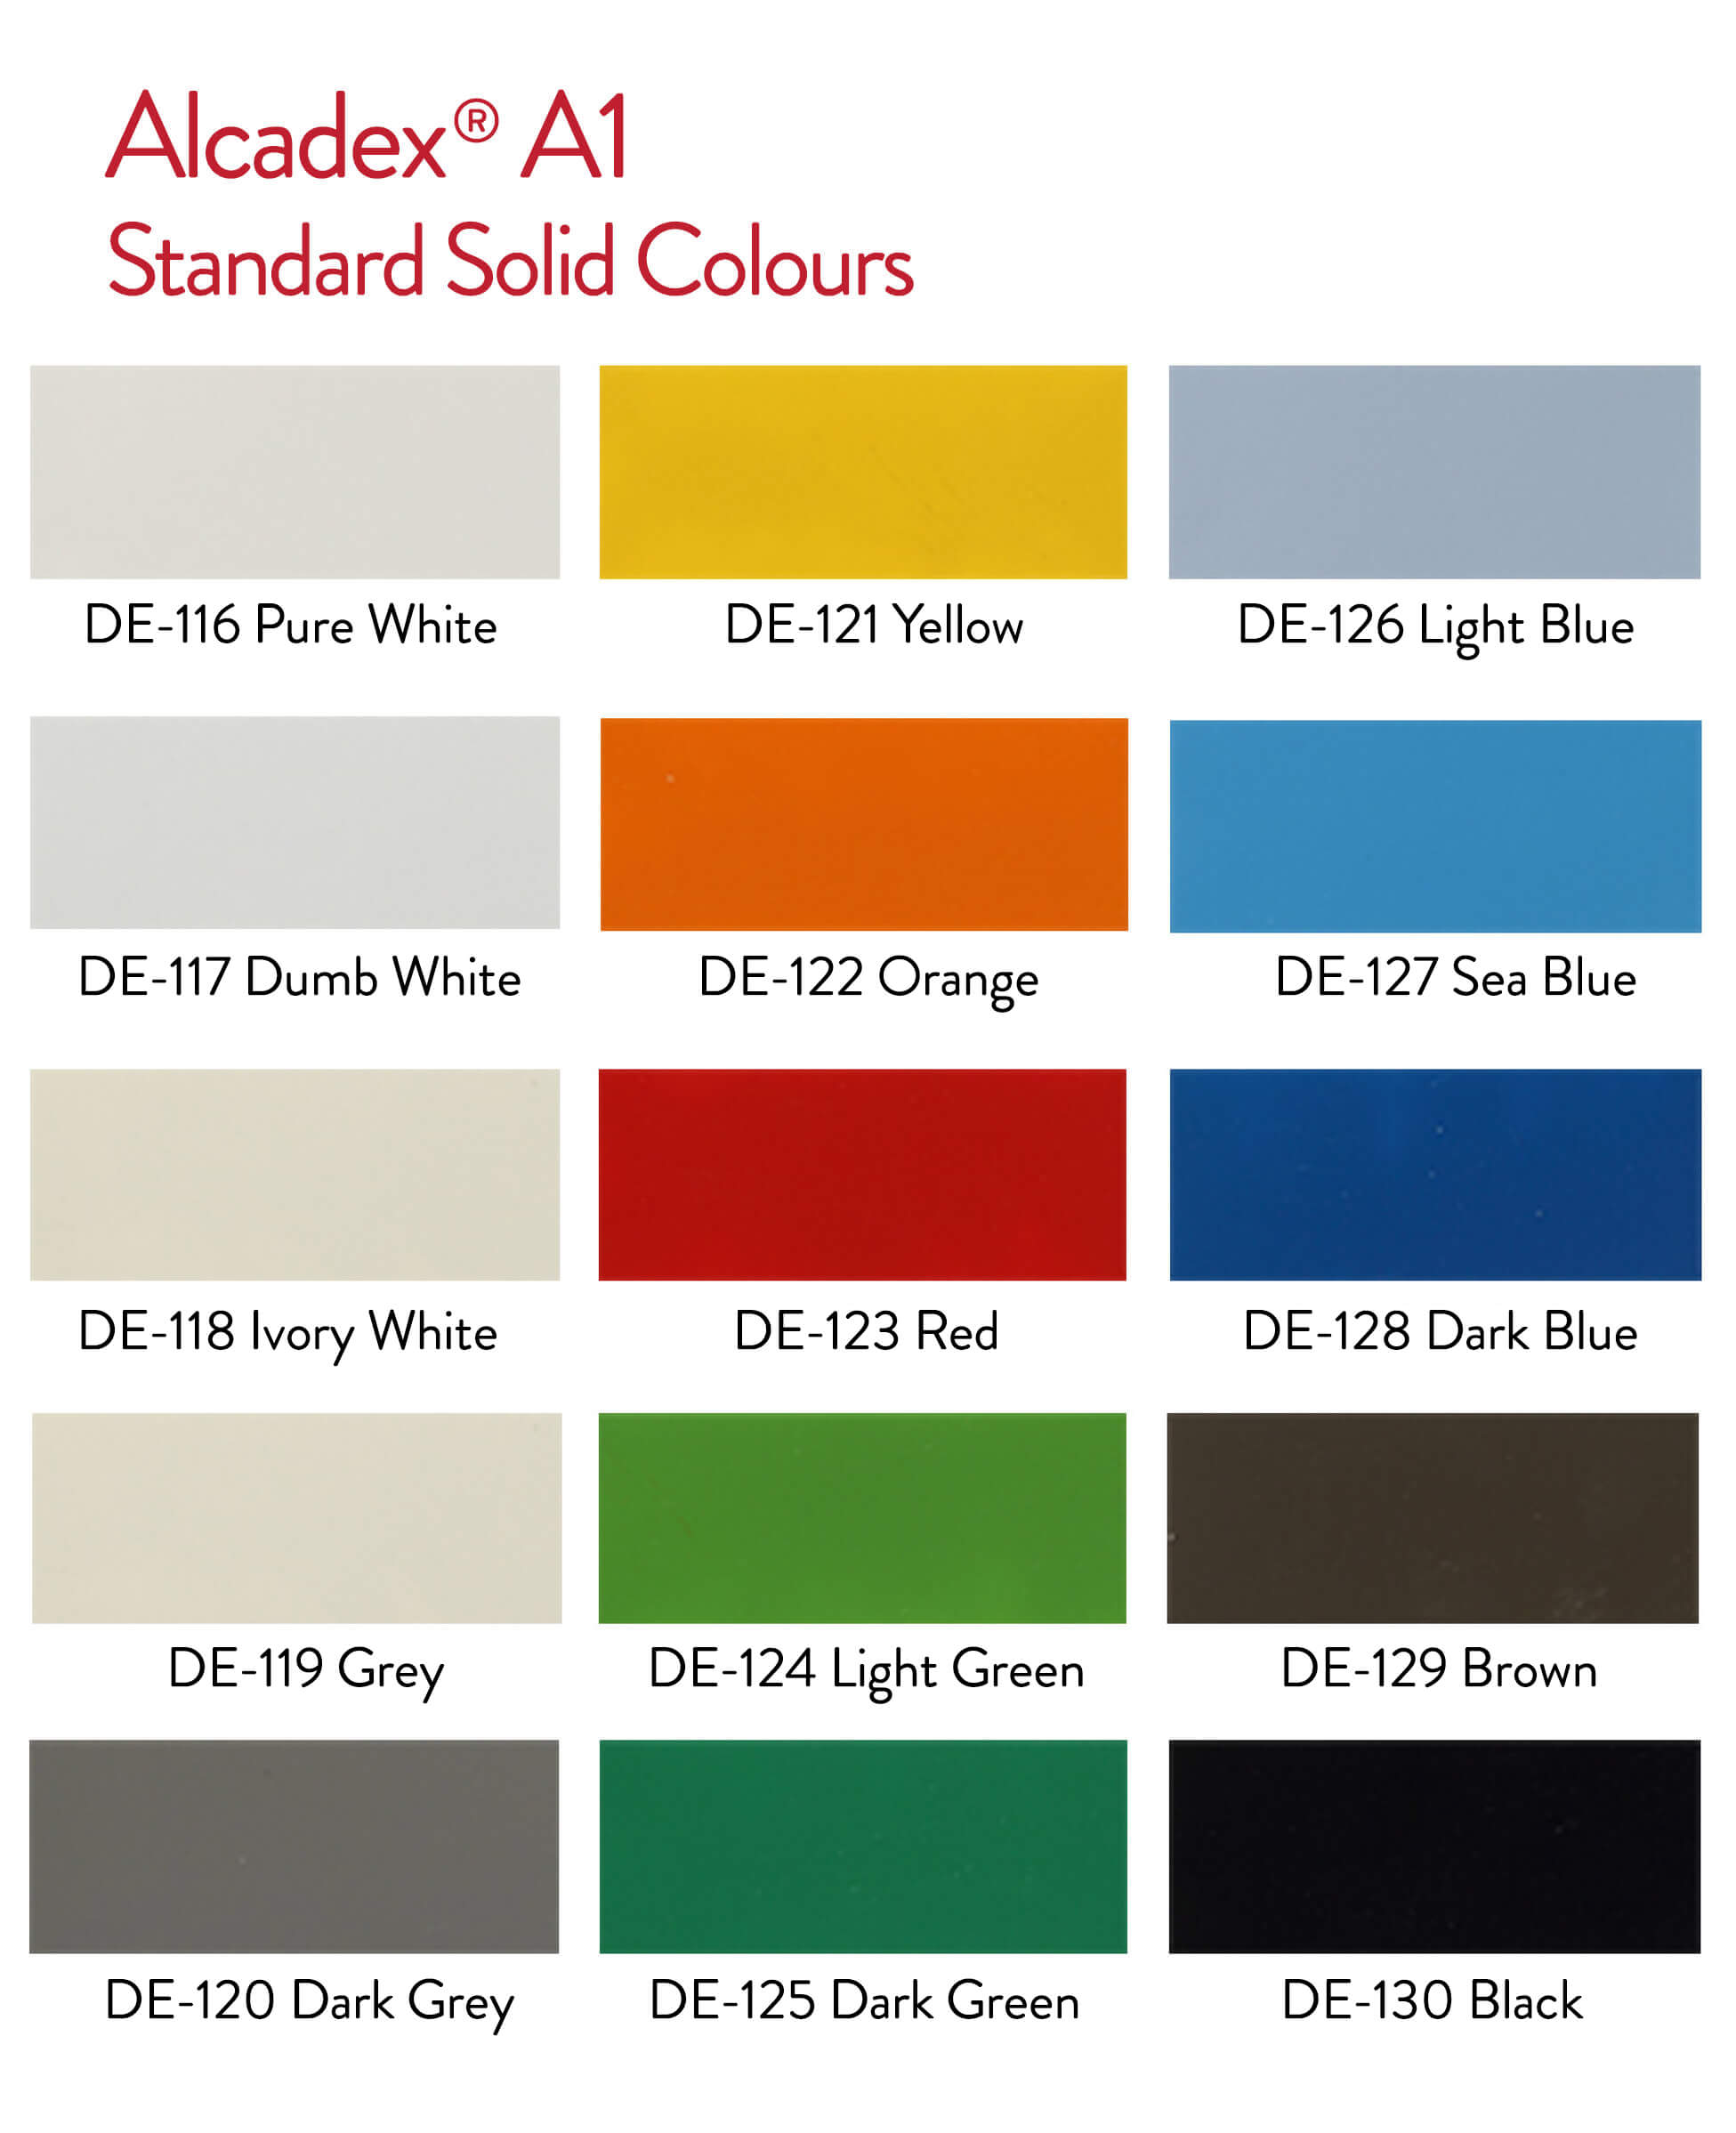 Standard Solid Colours